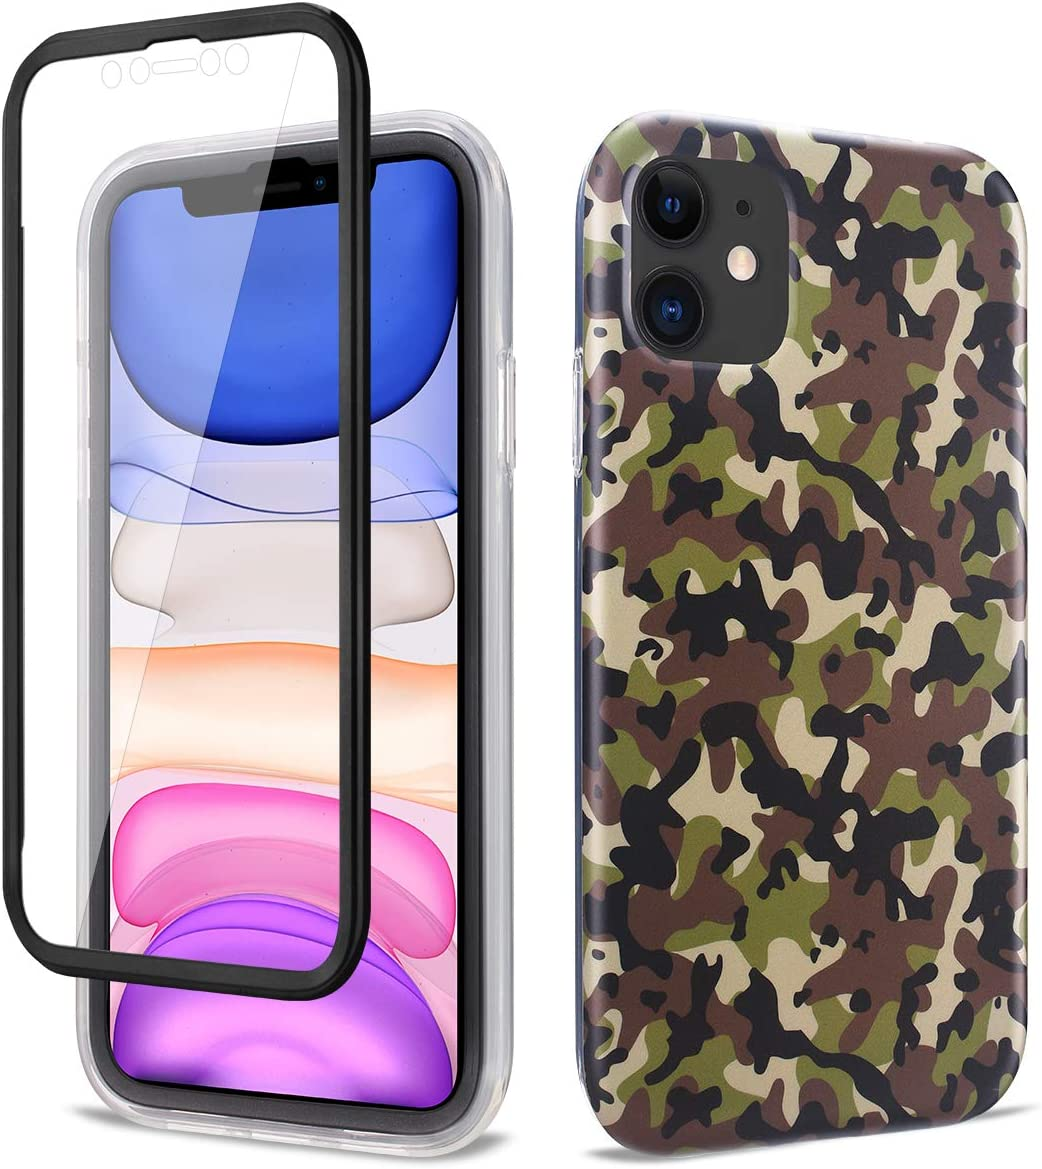 Ballaber iPhone 11 Case, Full-Body Built-in Screen Protector Slim Stylish Protective Case Hard PC Soft TPU Bumper Rubber Double Protection Case for Apple iPhone 11 6.1